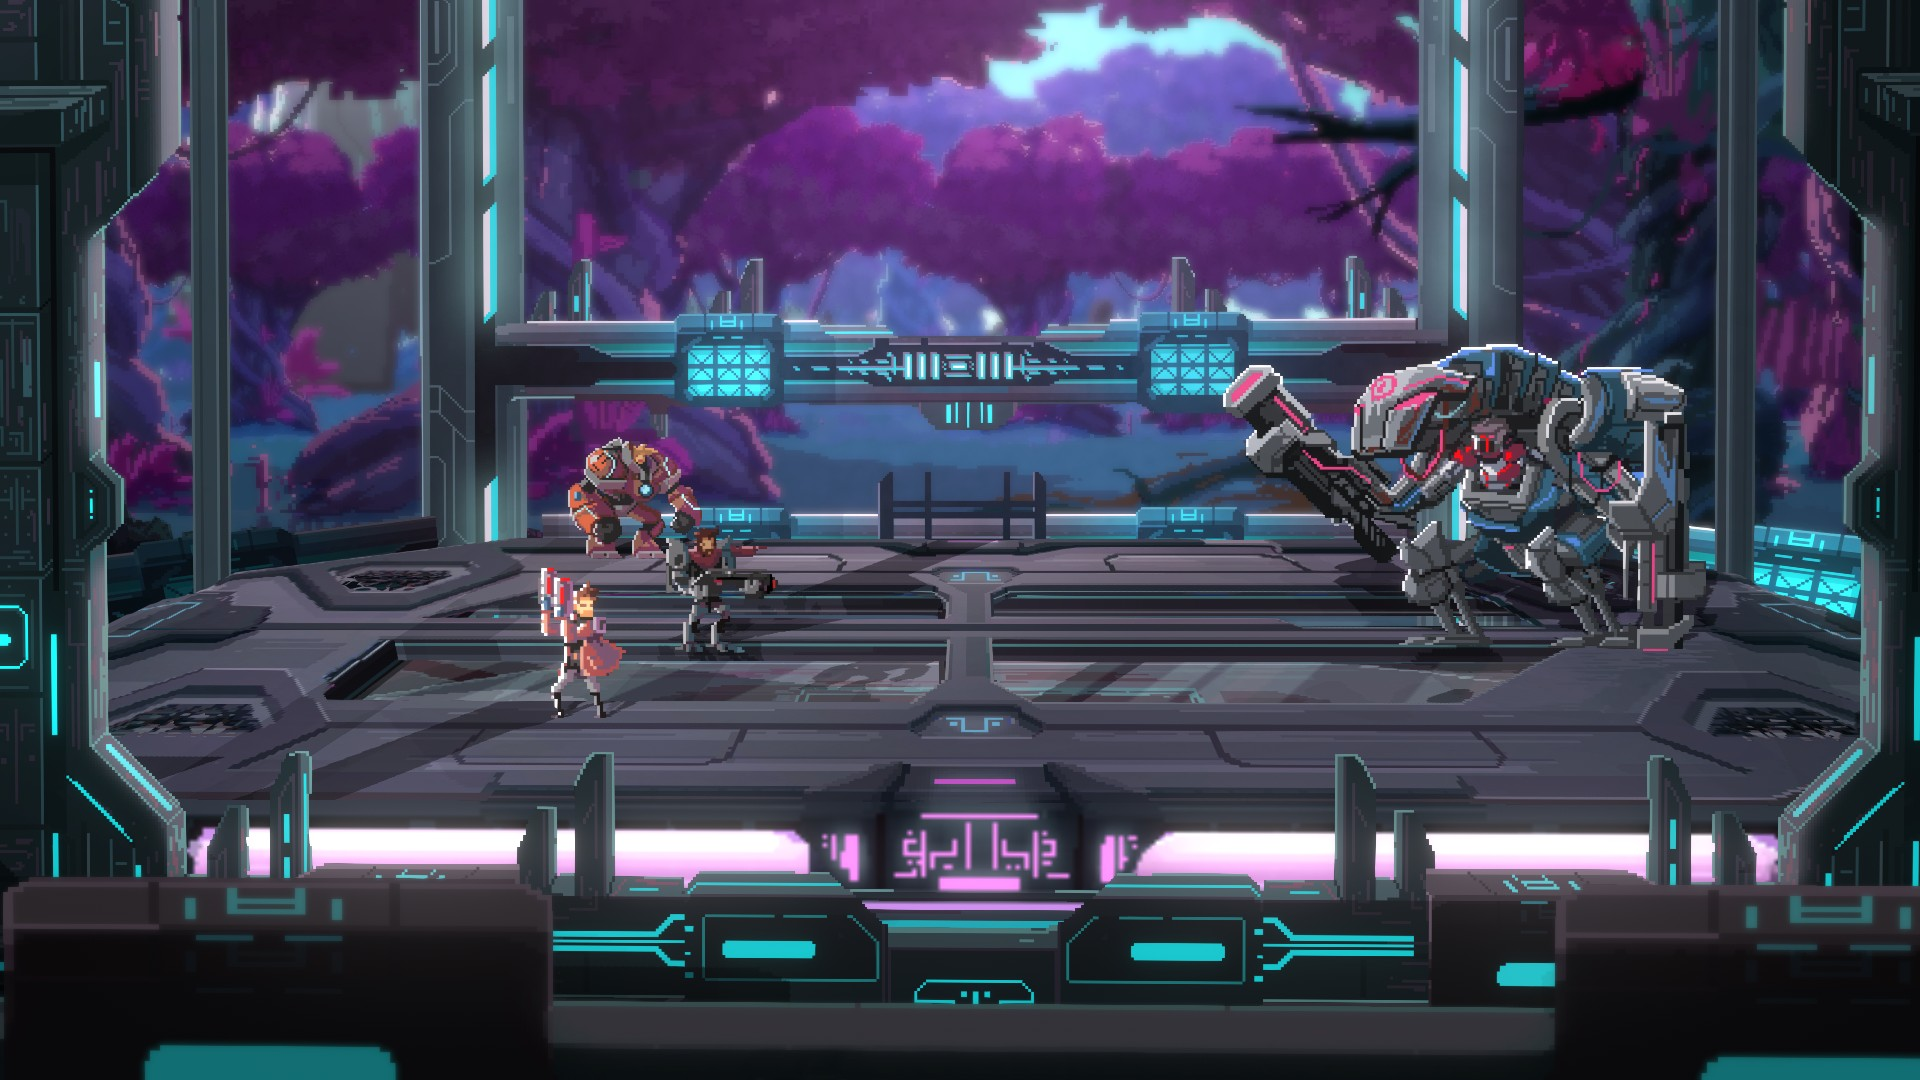 Star Renegades Arrives With Anime Goodness With Guerrilla Collective Trailer (1)